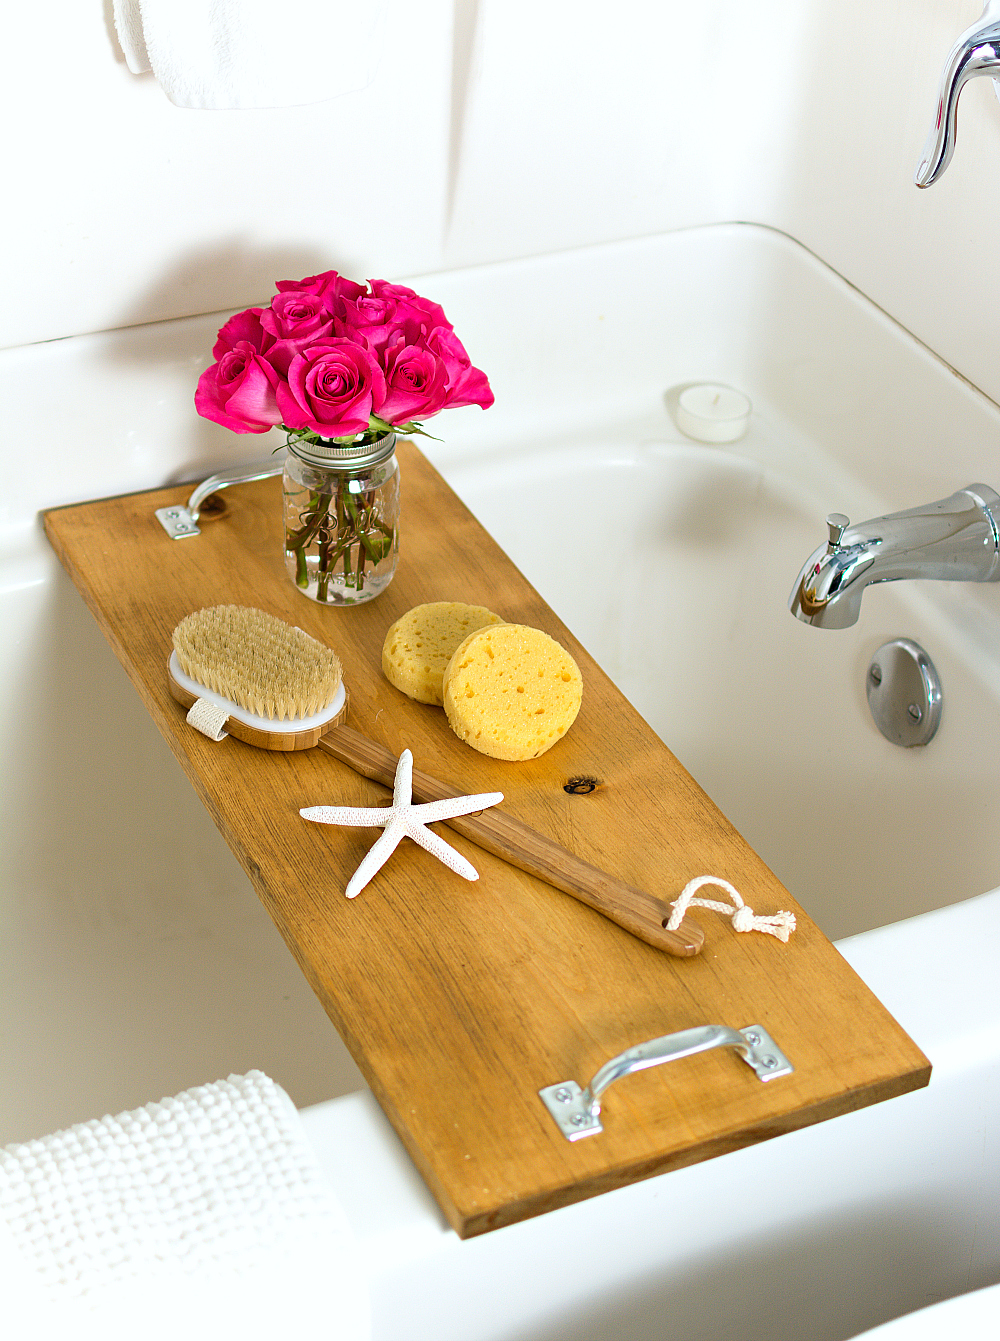 bath-caddy-diy-wood (7 of 12) 2